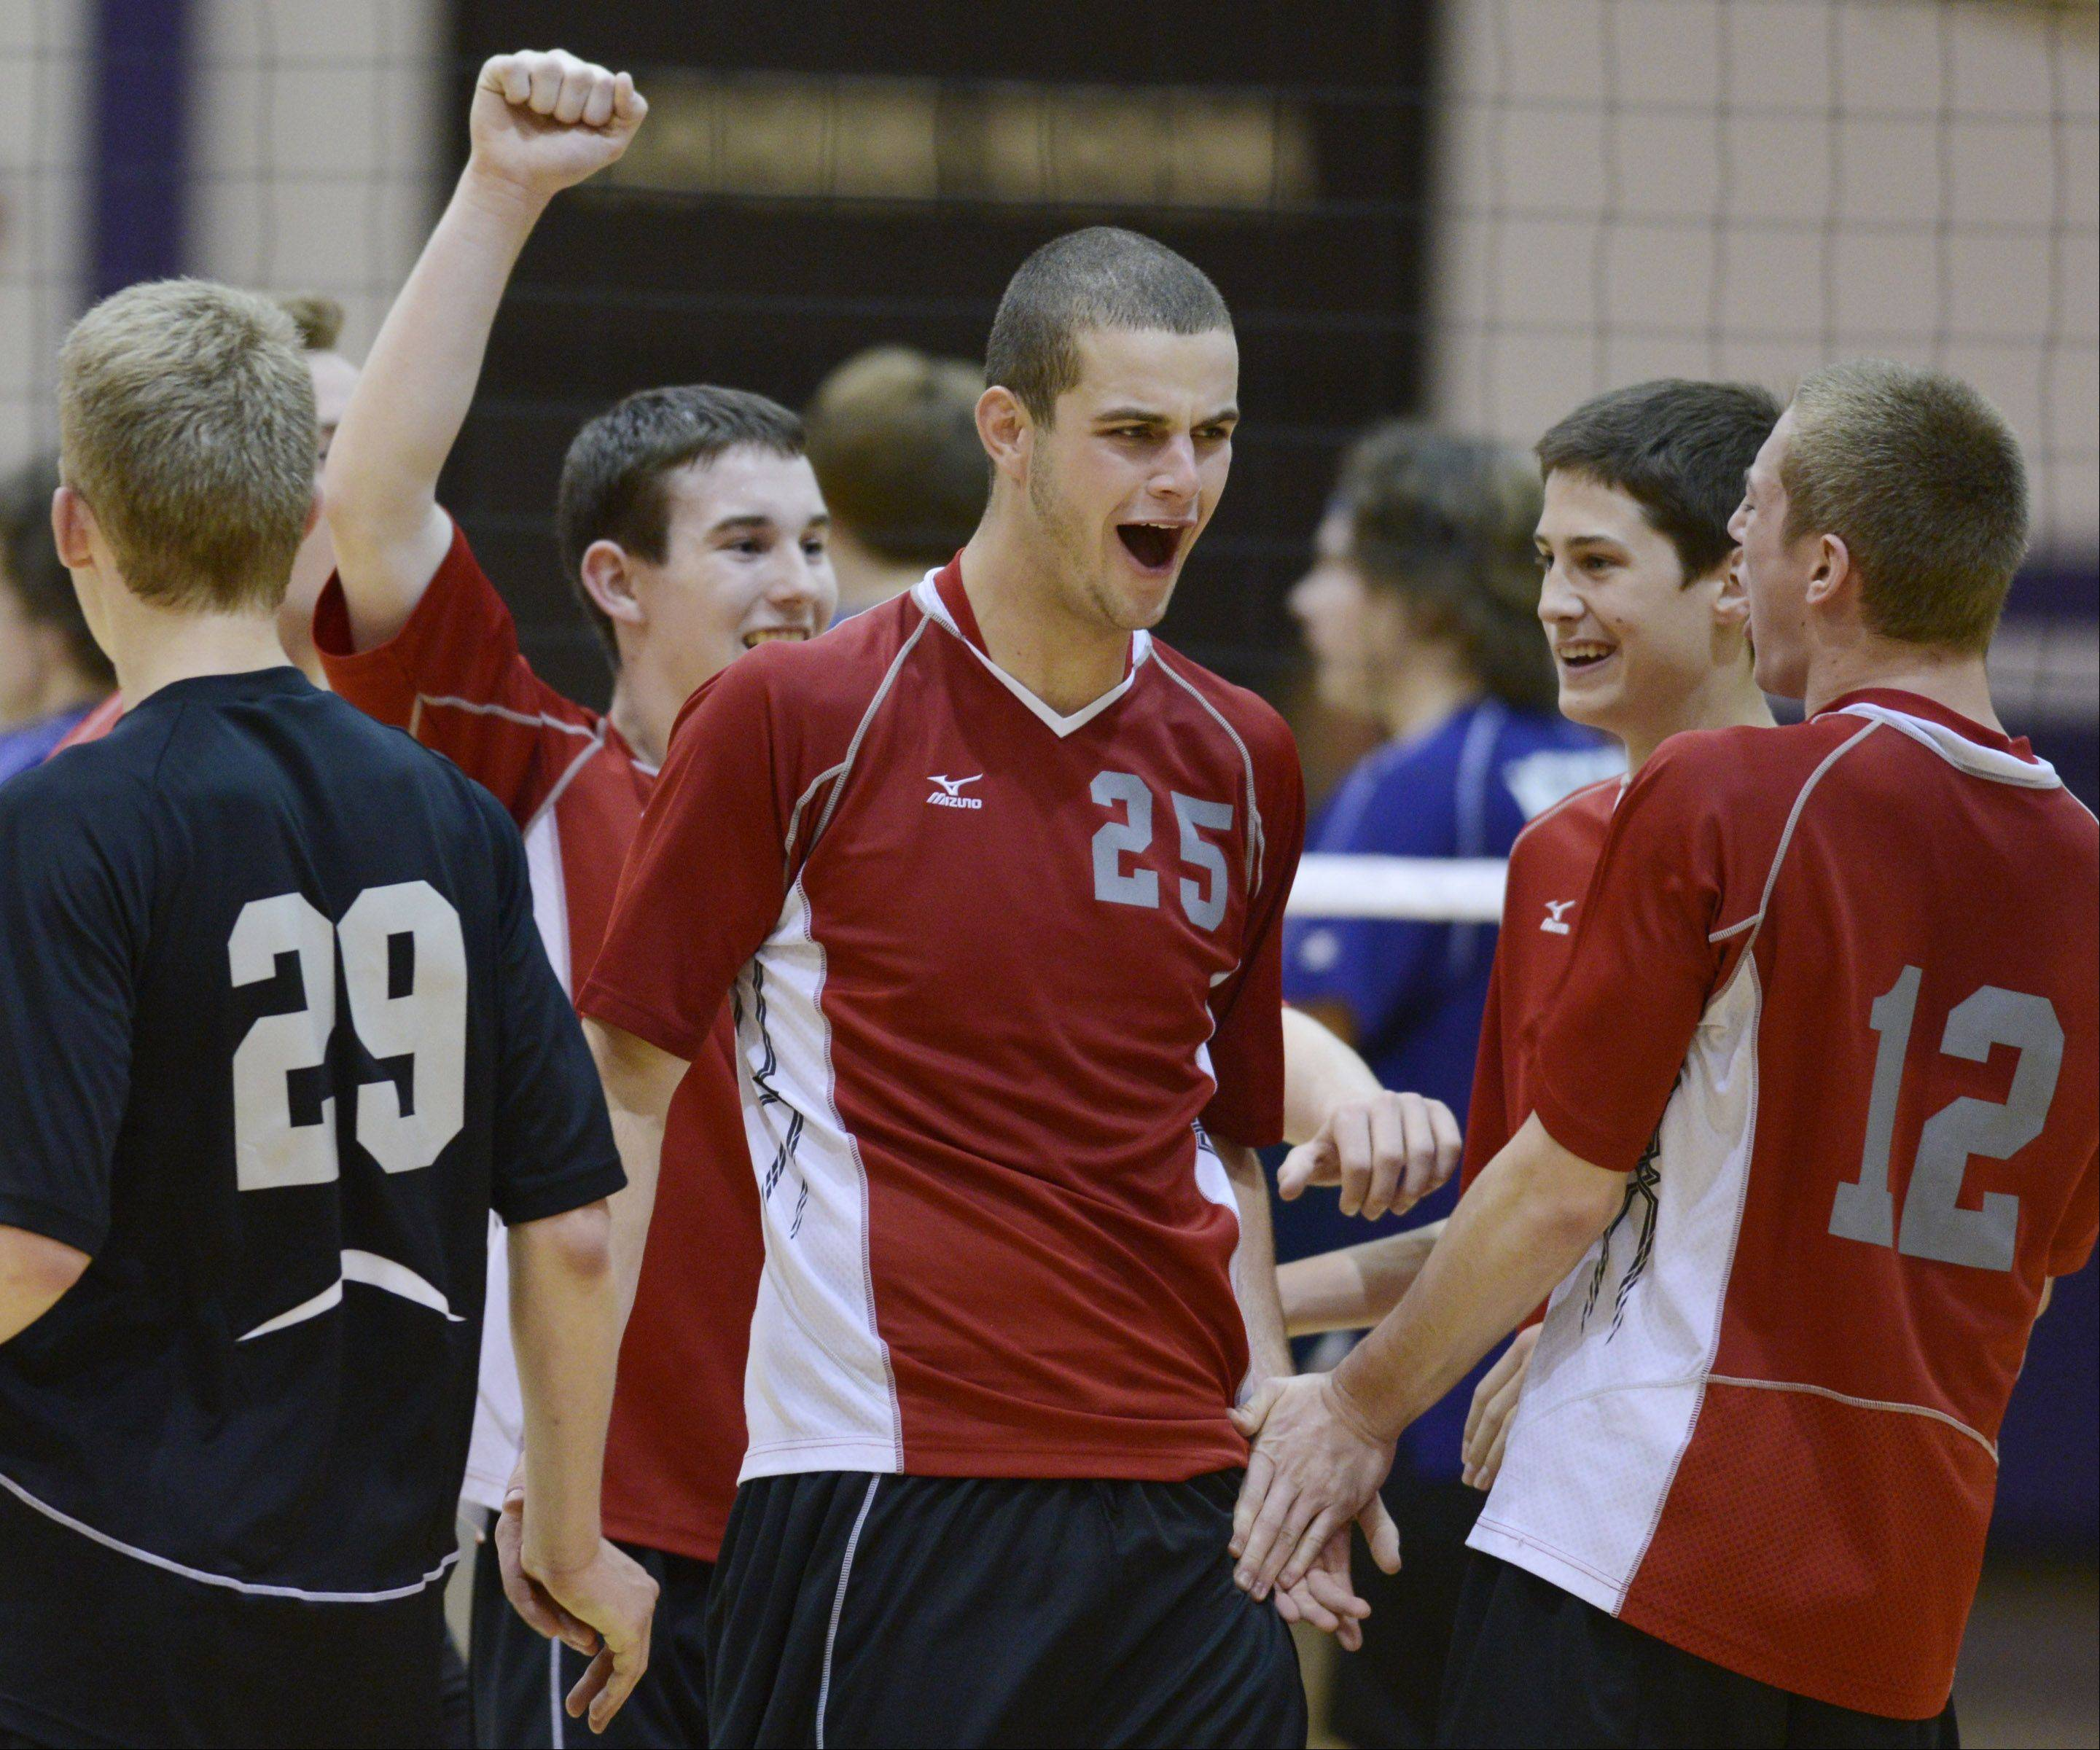 Palatine's Brian Keough, middle, celebrates with his teammates after the Pirates won the Mid-Suburban League boys volleyball championship at Rolling Meadows on Wednesday.